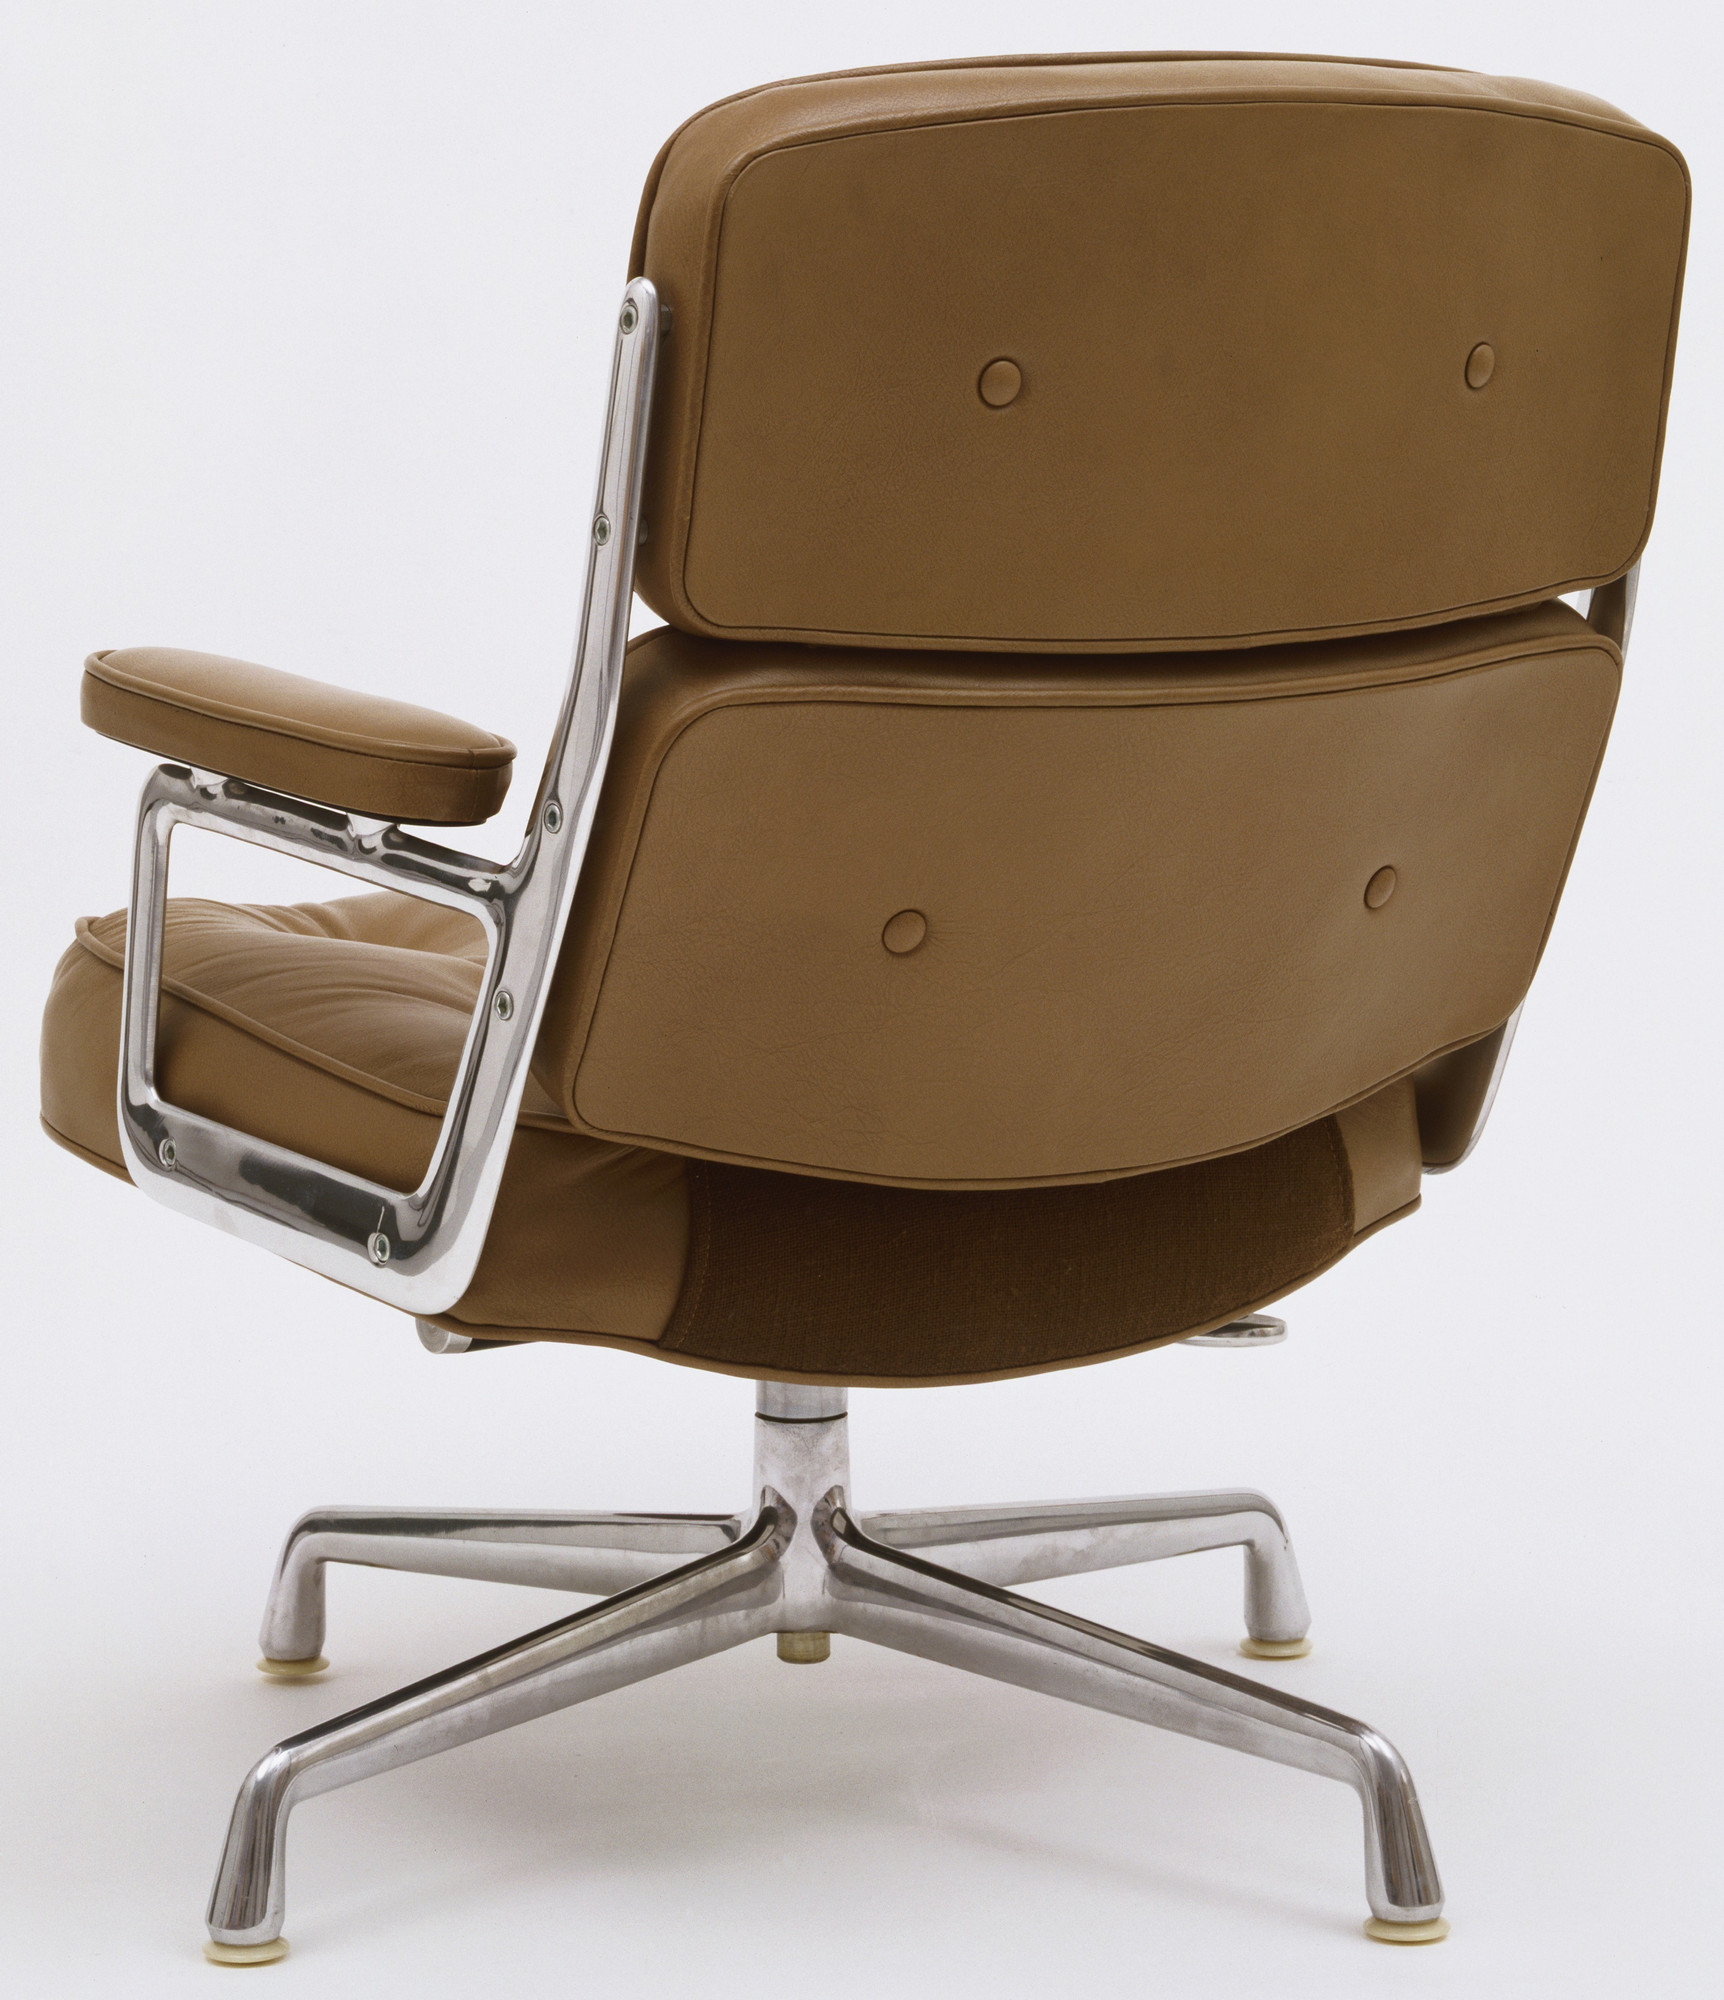 Charles Eames, Ray Eames. Lounge Chair. 1960